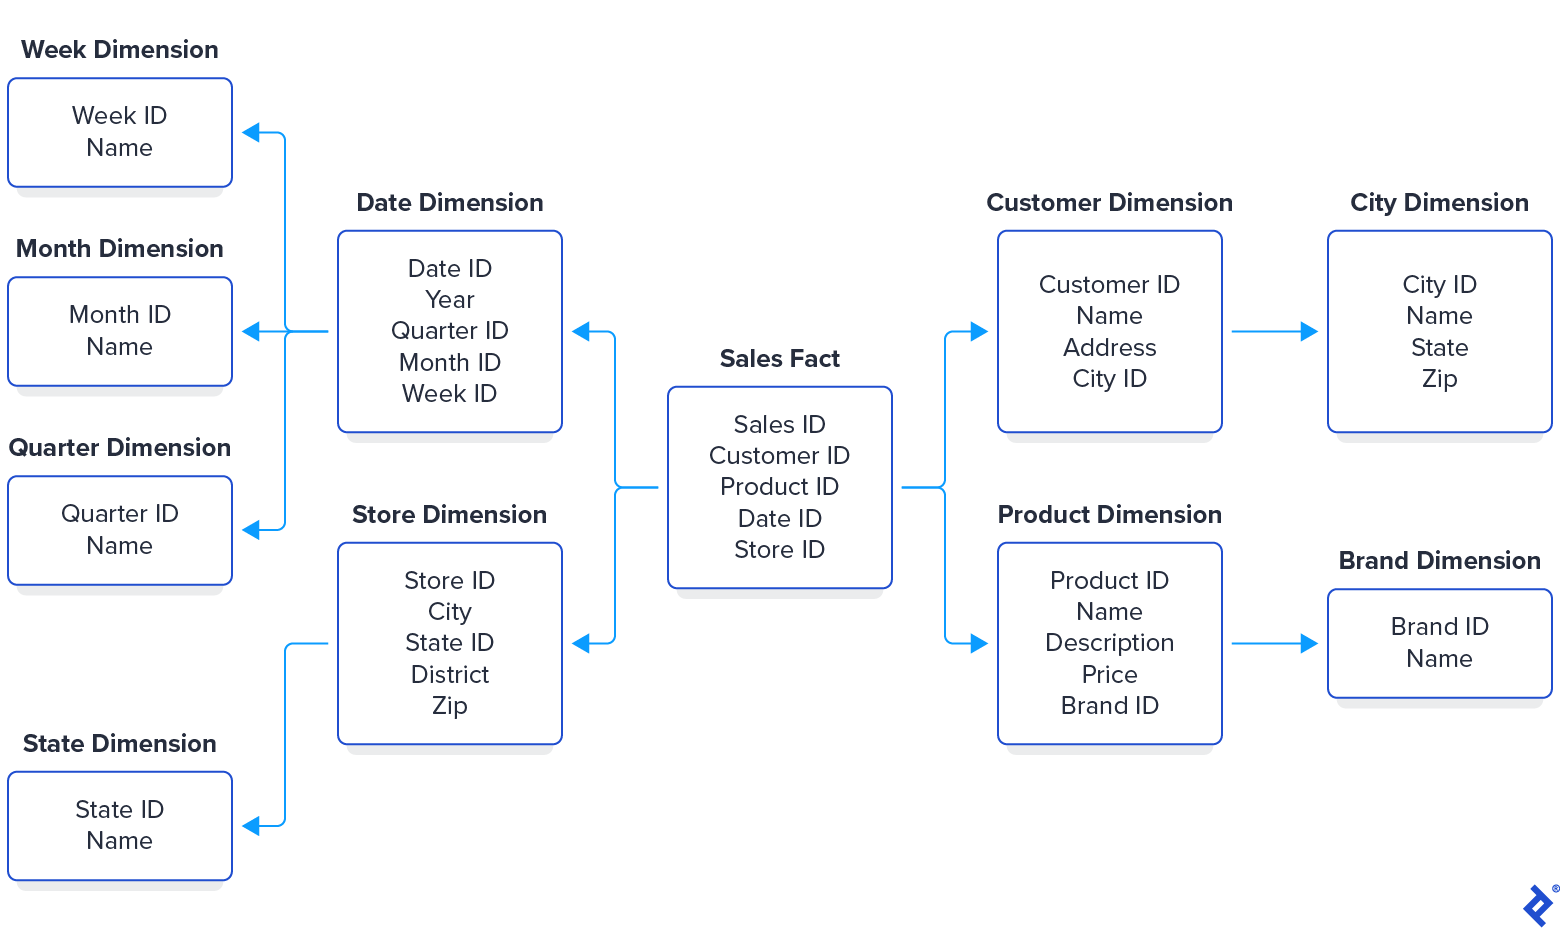 The previous star schema extended to become a snowflake schema. The original five tables are still present, but each dimension table now links to further sub-dimension tables. For example, the Customer Dimension table consisted of a customer ID, name, address, and city; here the city is replaced with a city ID, linking it to a City Dimension table that stores a city name, state name, and zip/postal code for each city id.